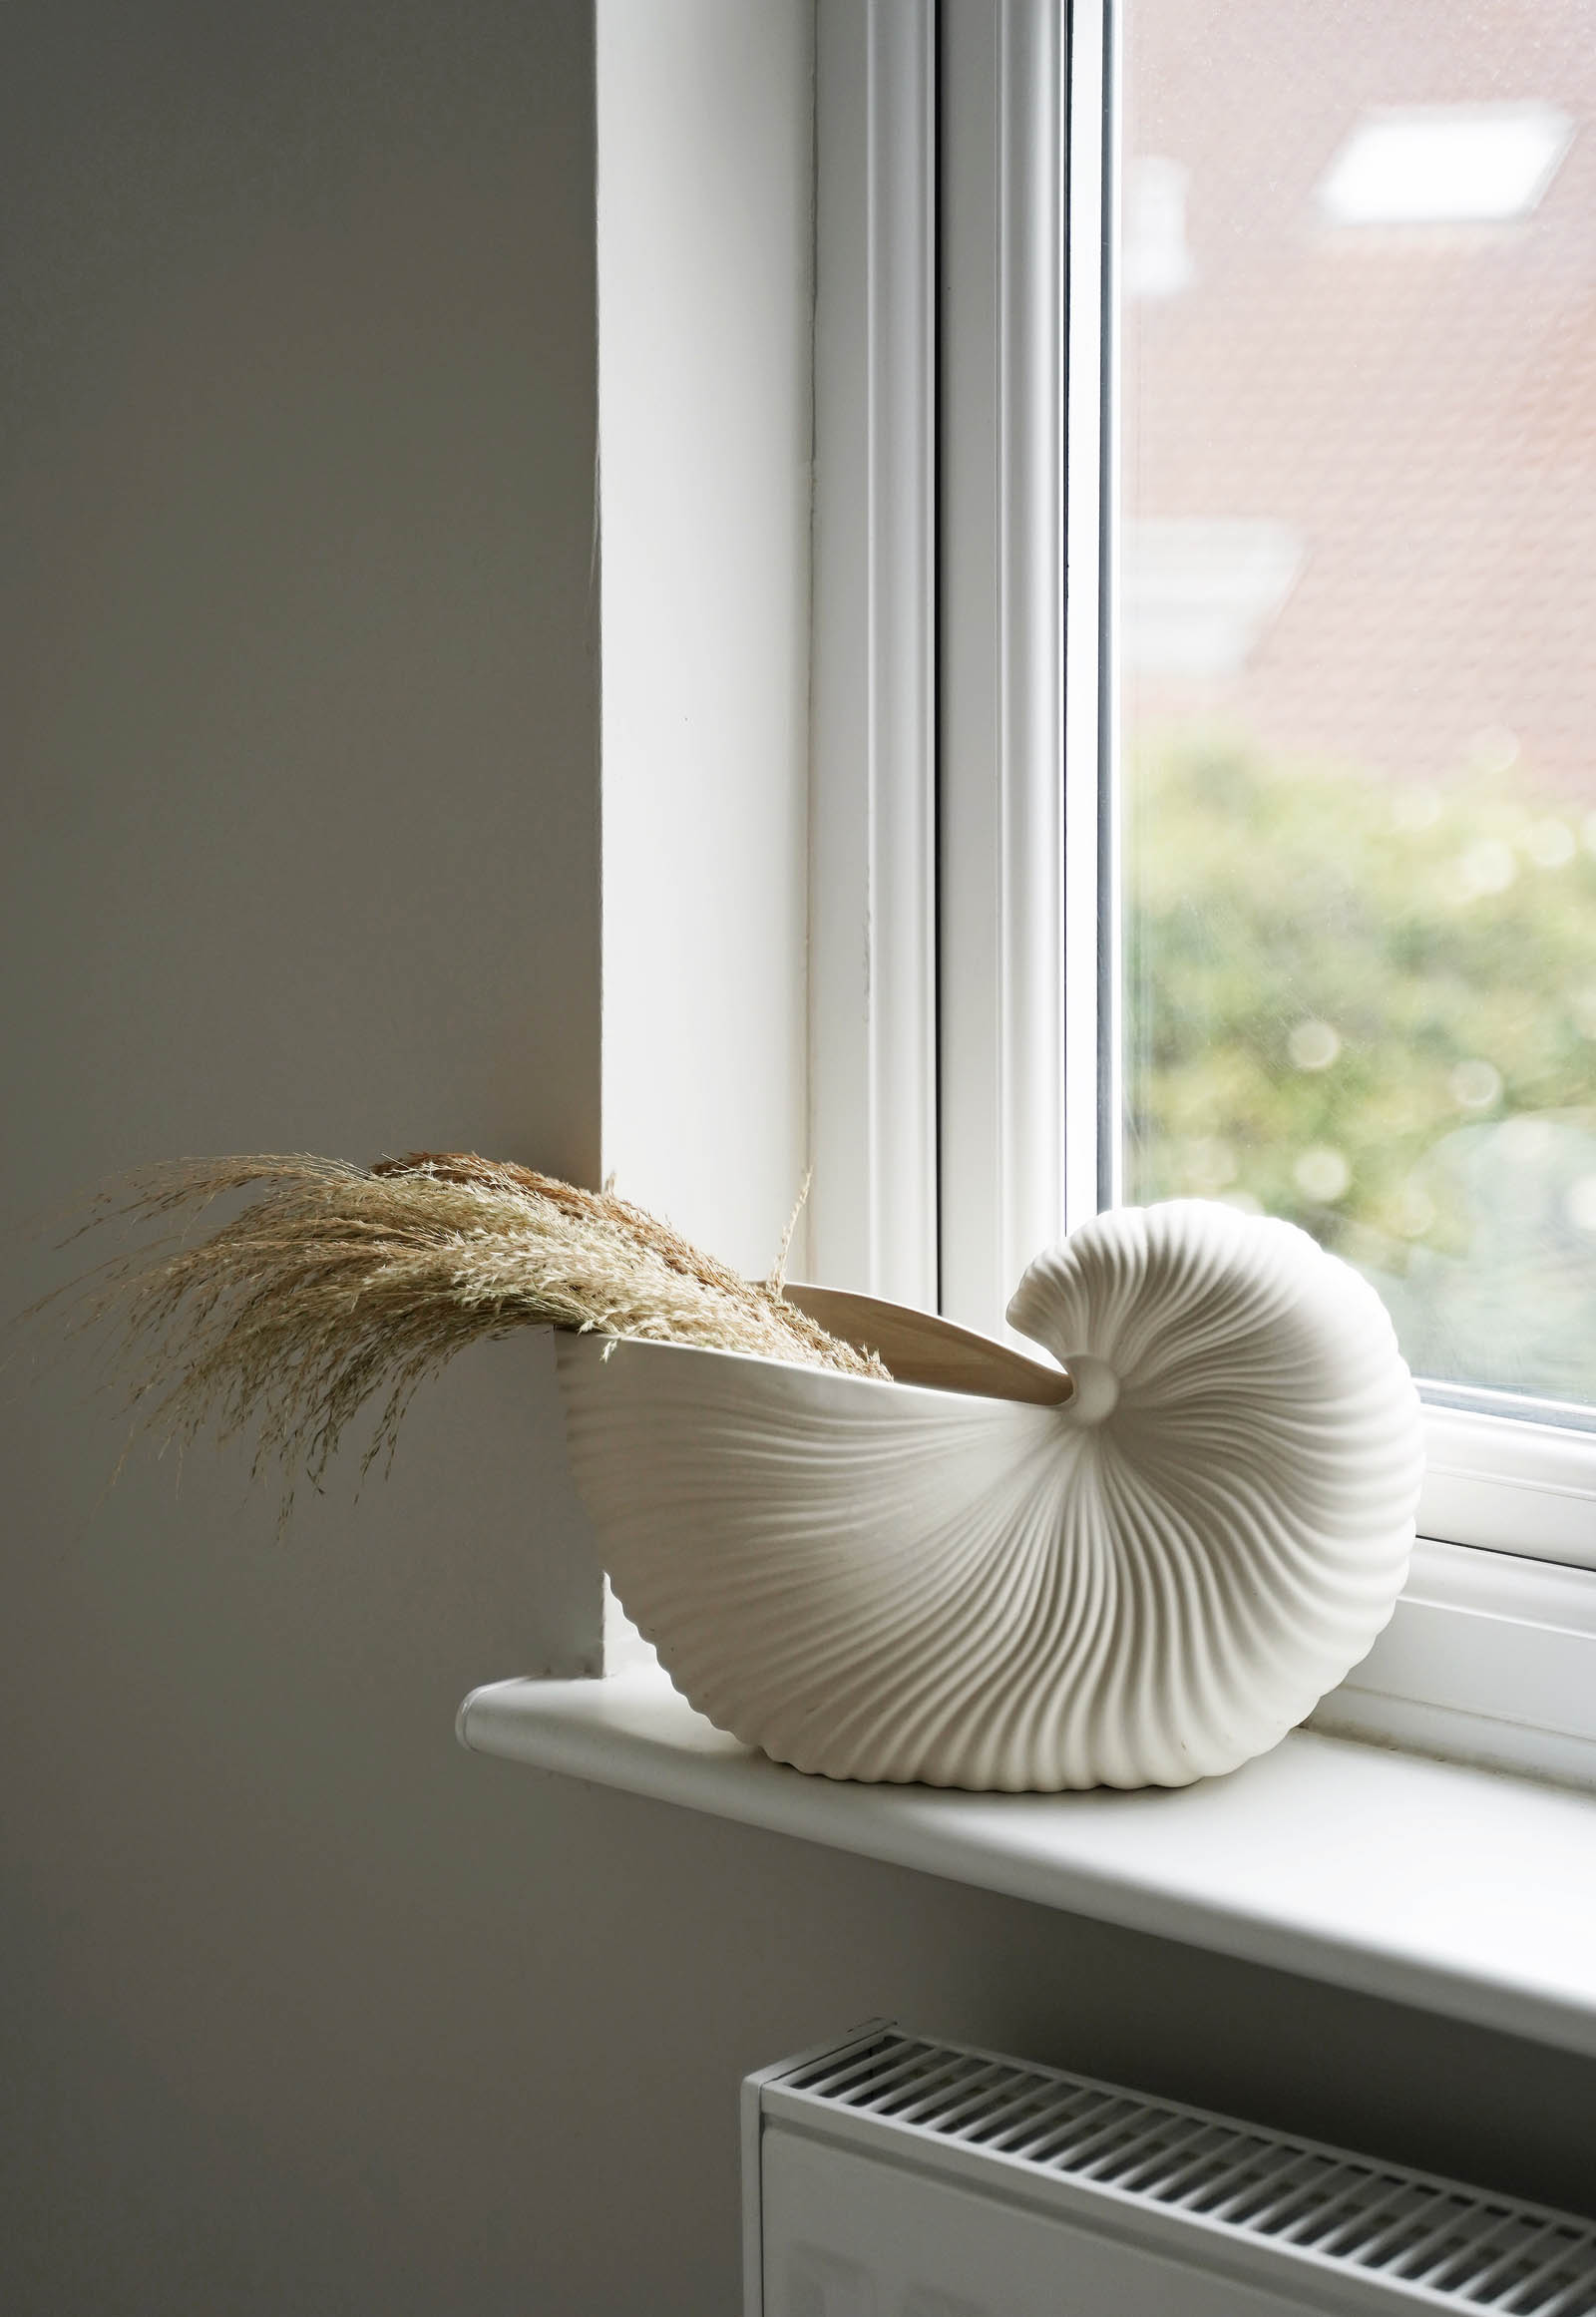 Ferm Living shell vase filled with dried grasses | These Four Walls blog